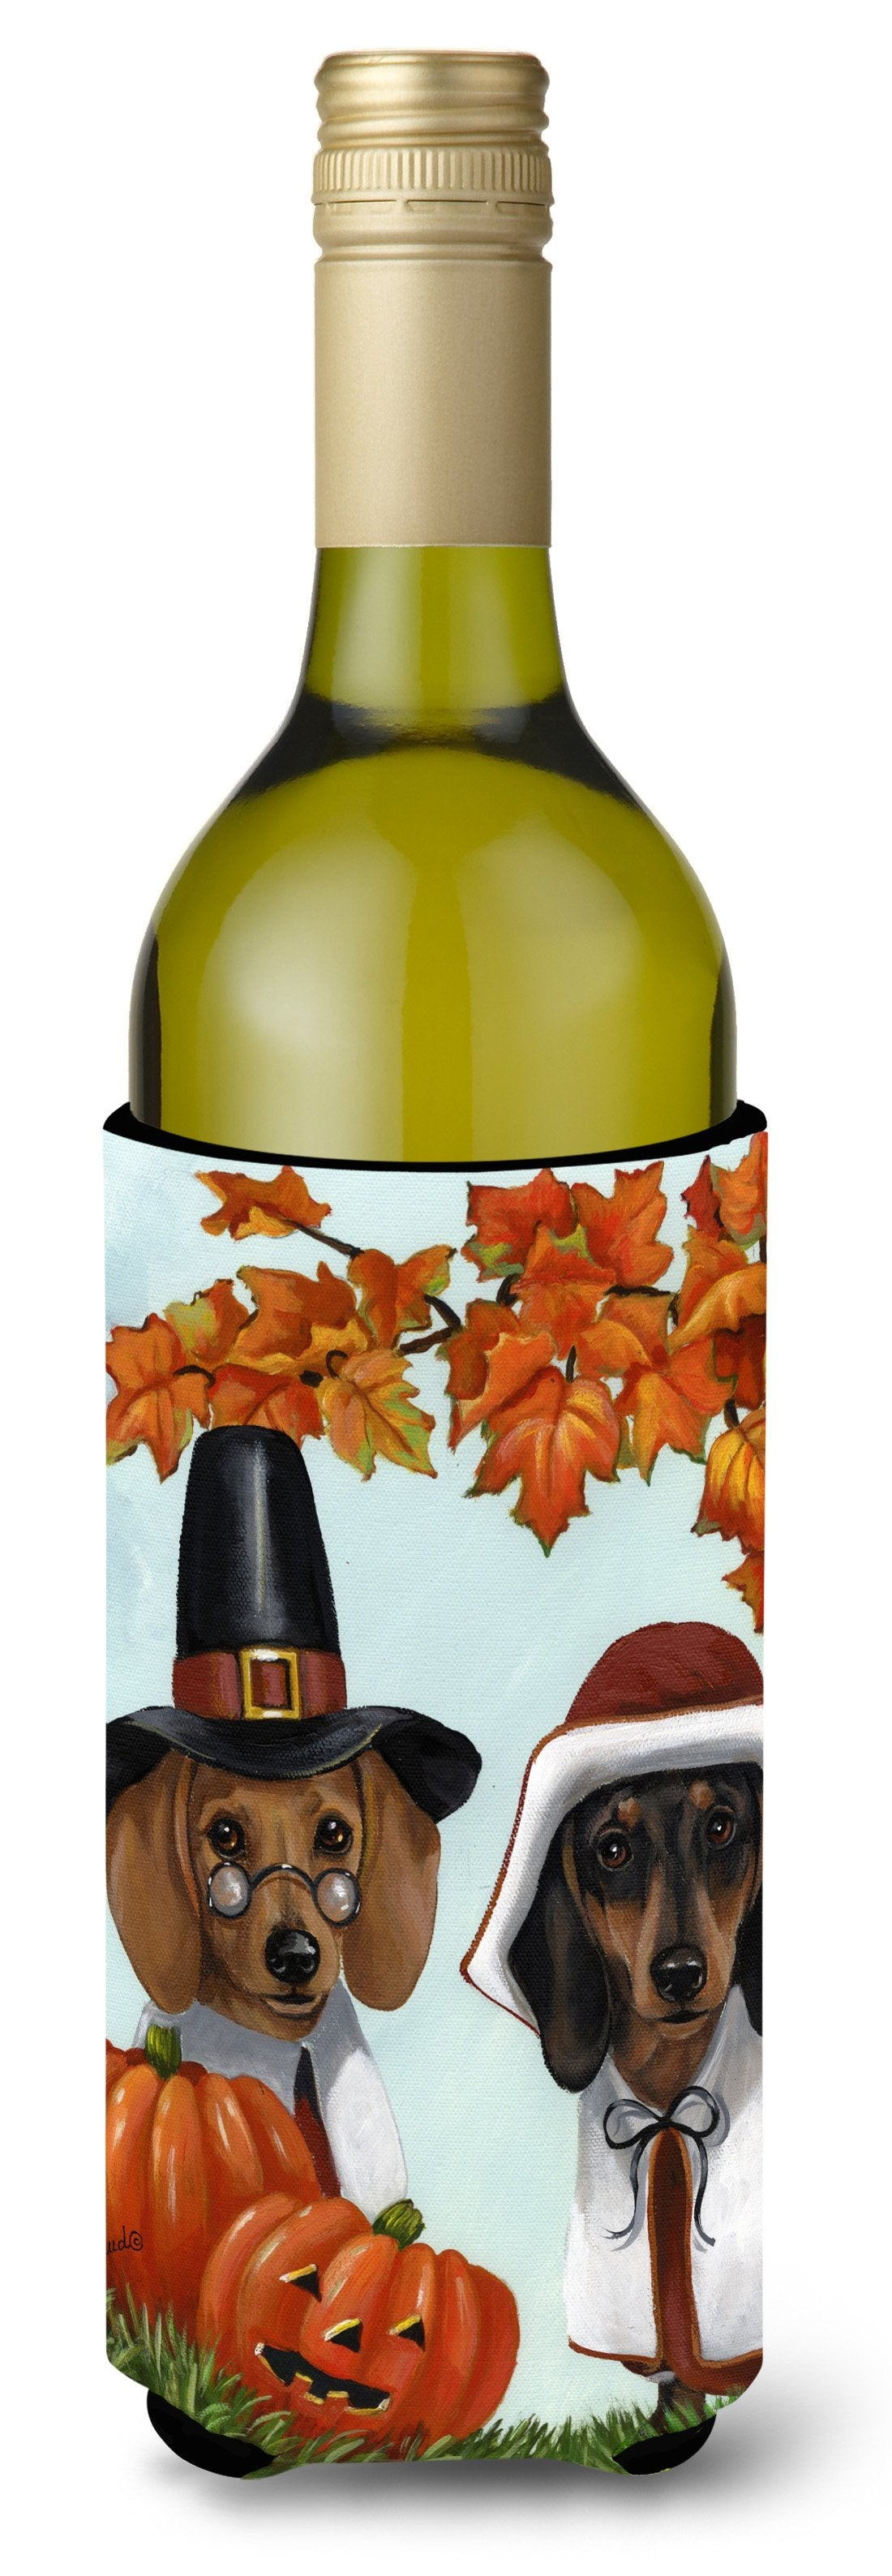 Dachshund Thanksgiving Pilgrims Wine Bottle Hugger PPP3087LITERK by Caroline's Treasures